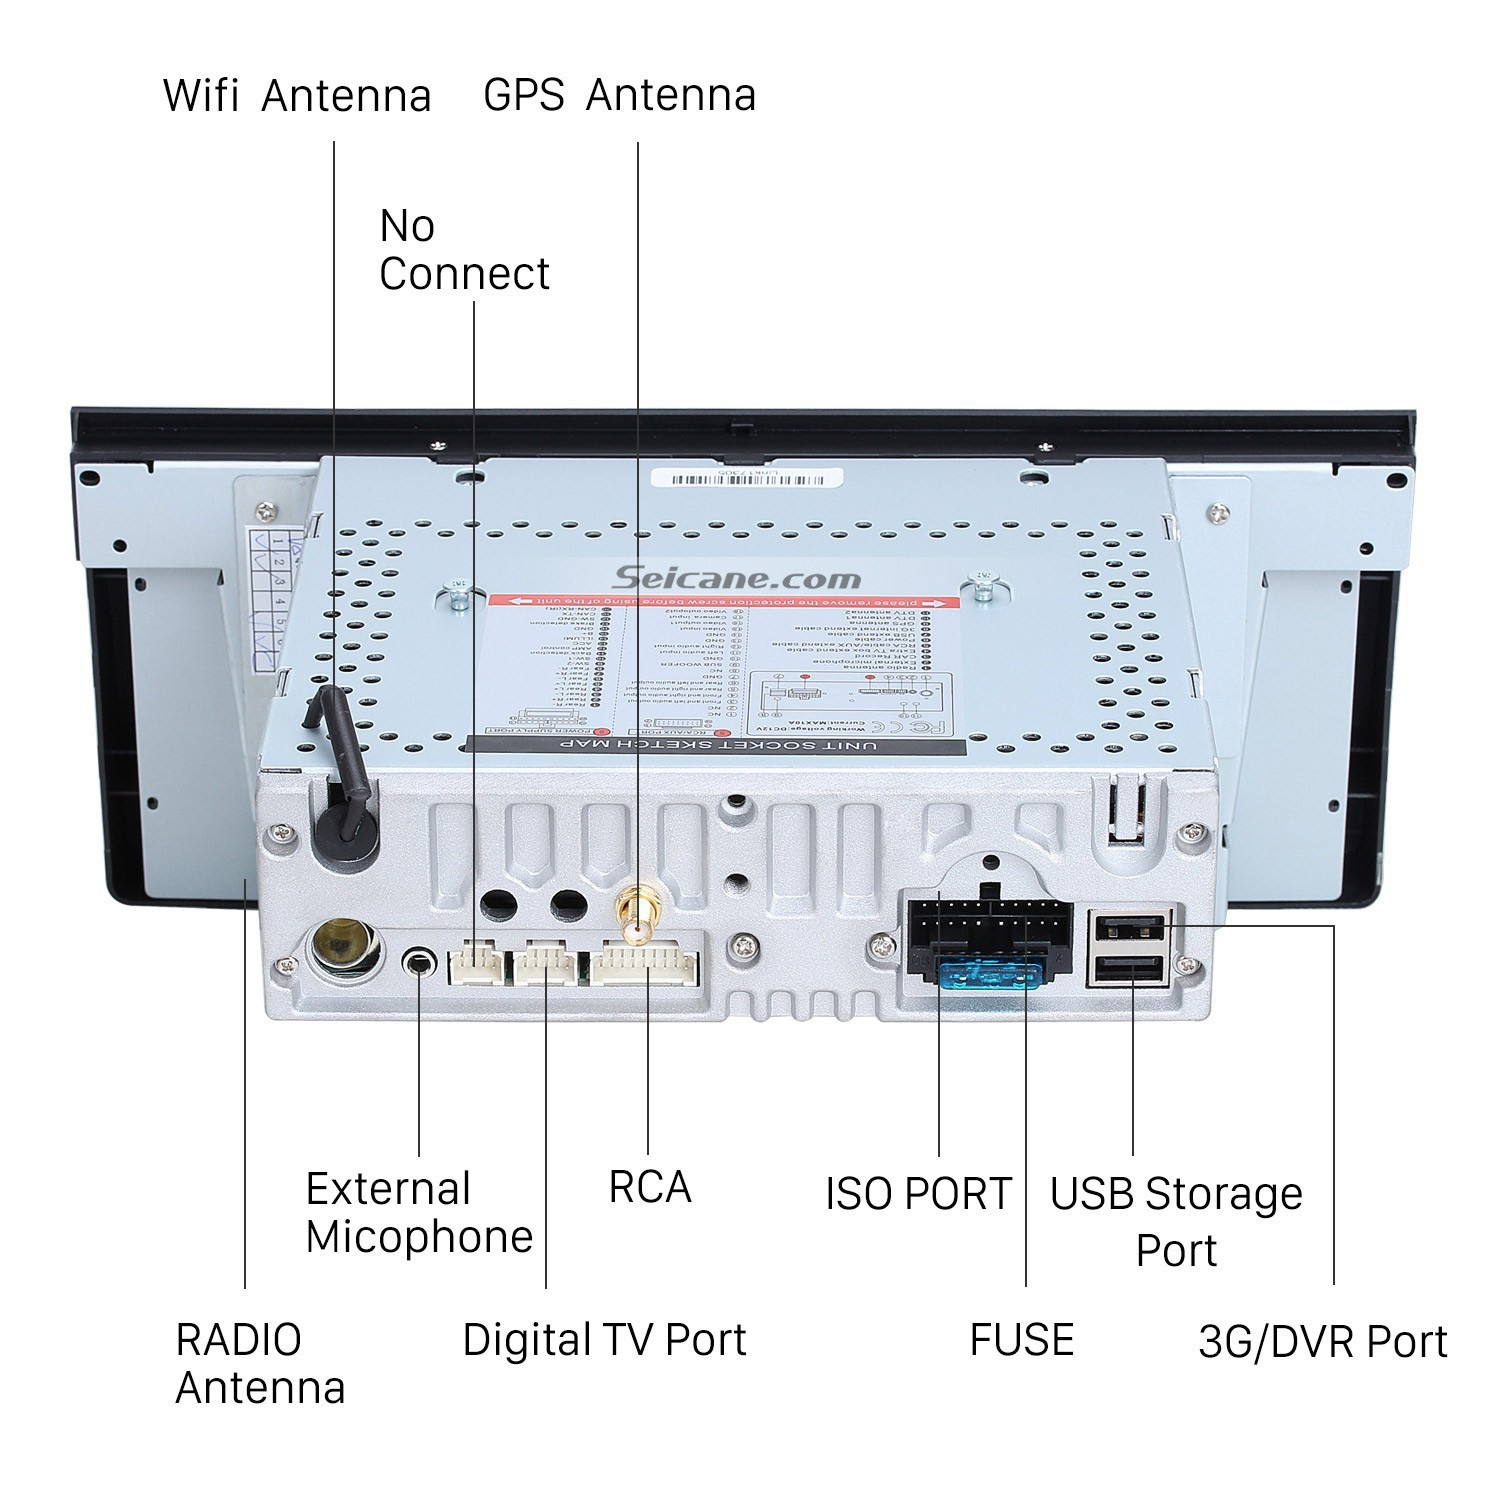 bmw x5 stereo wiring diagram Download-Wiring Diagram For Audible Relay New Bmw X5 Radio Wiring Diagram Collection 14-d